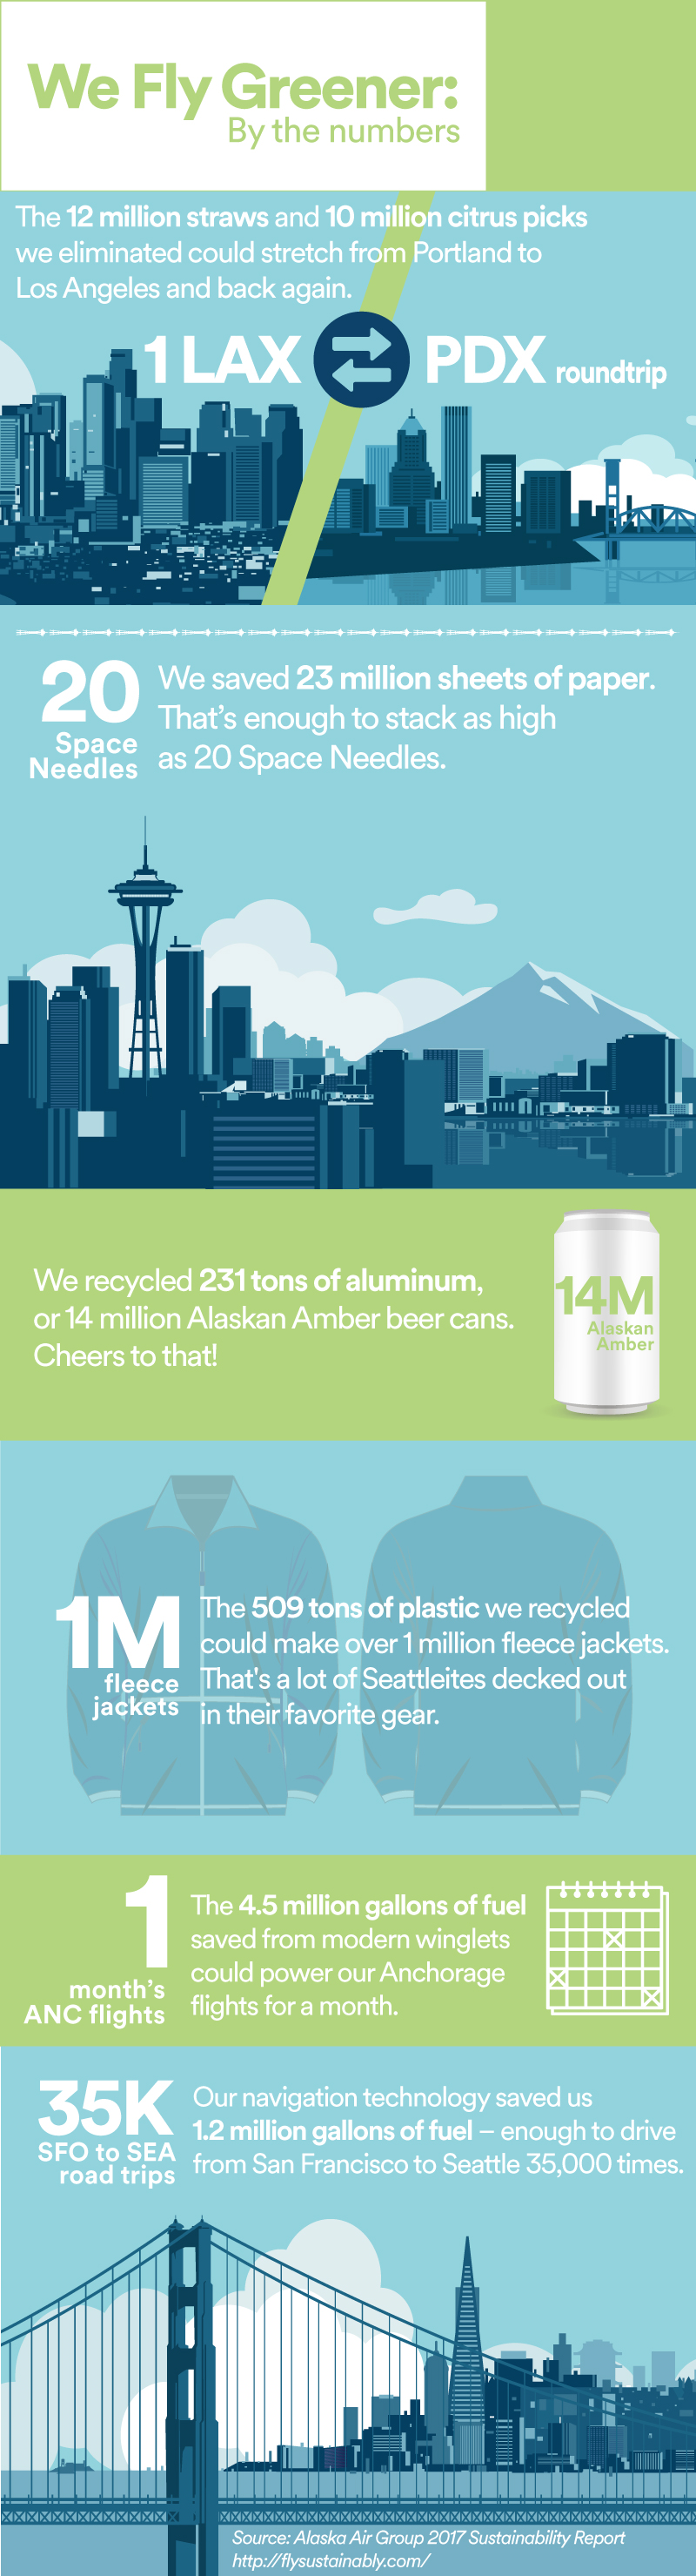 Alaska Airlines Sustainable Travel Infographic